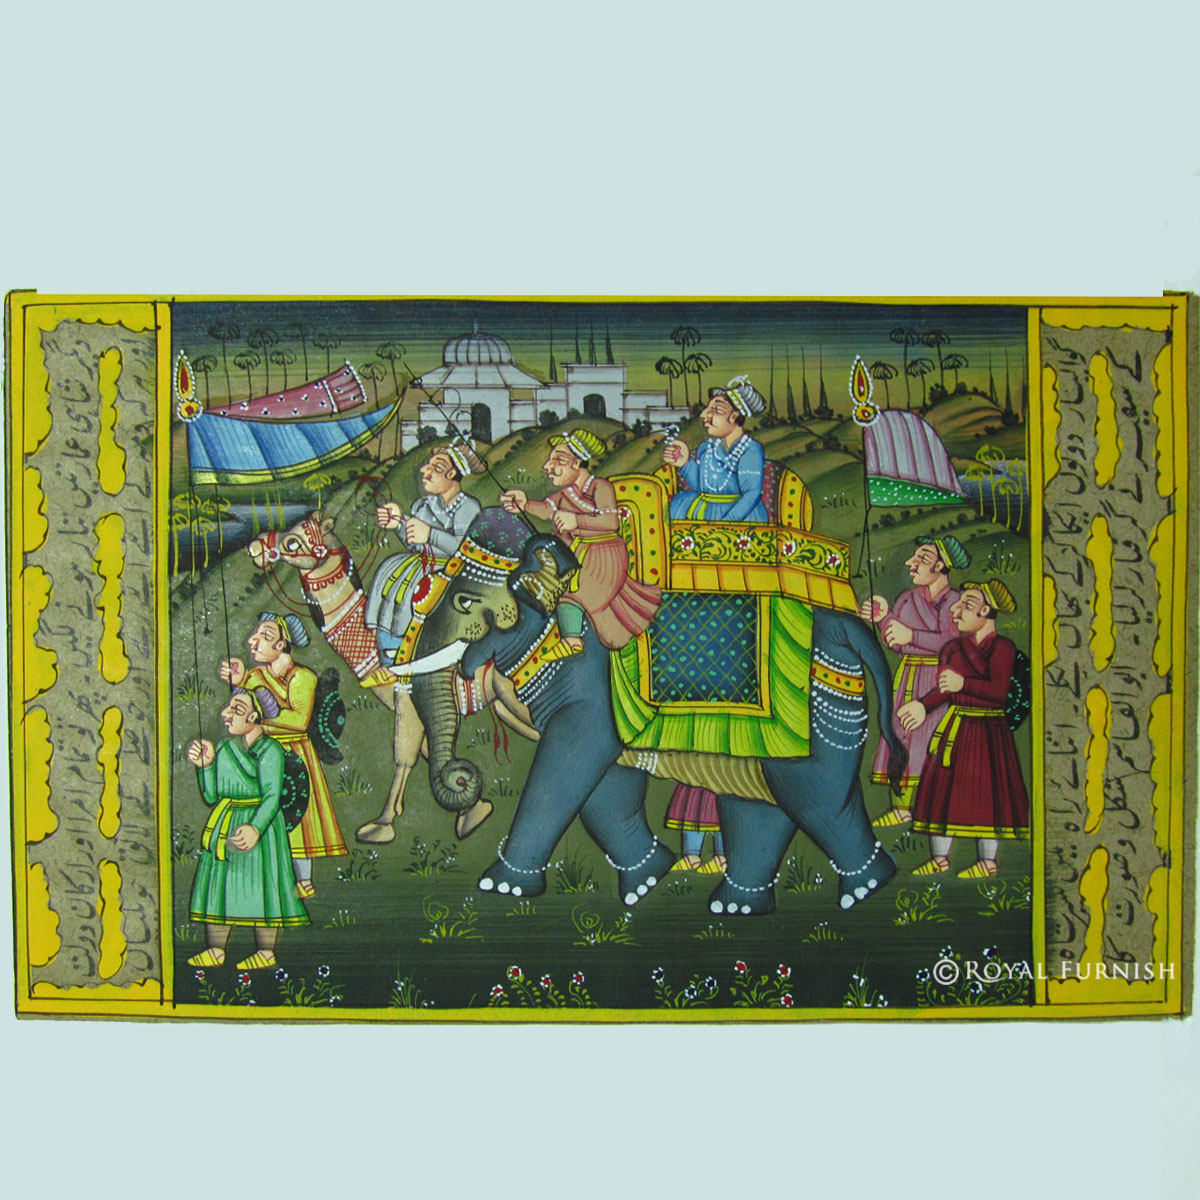 5 x7 rajasthani mughal procession miniature painting indian wall decor art Home decor paintings for sale india